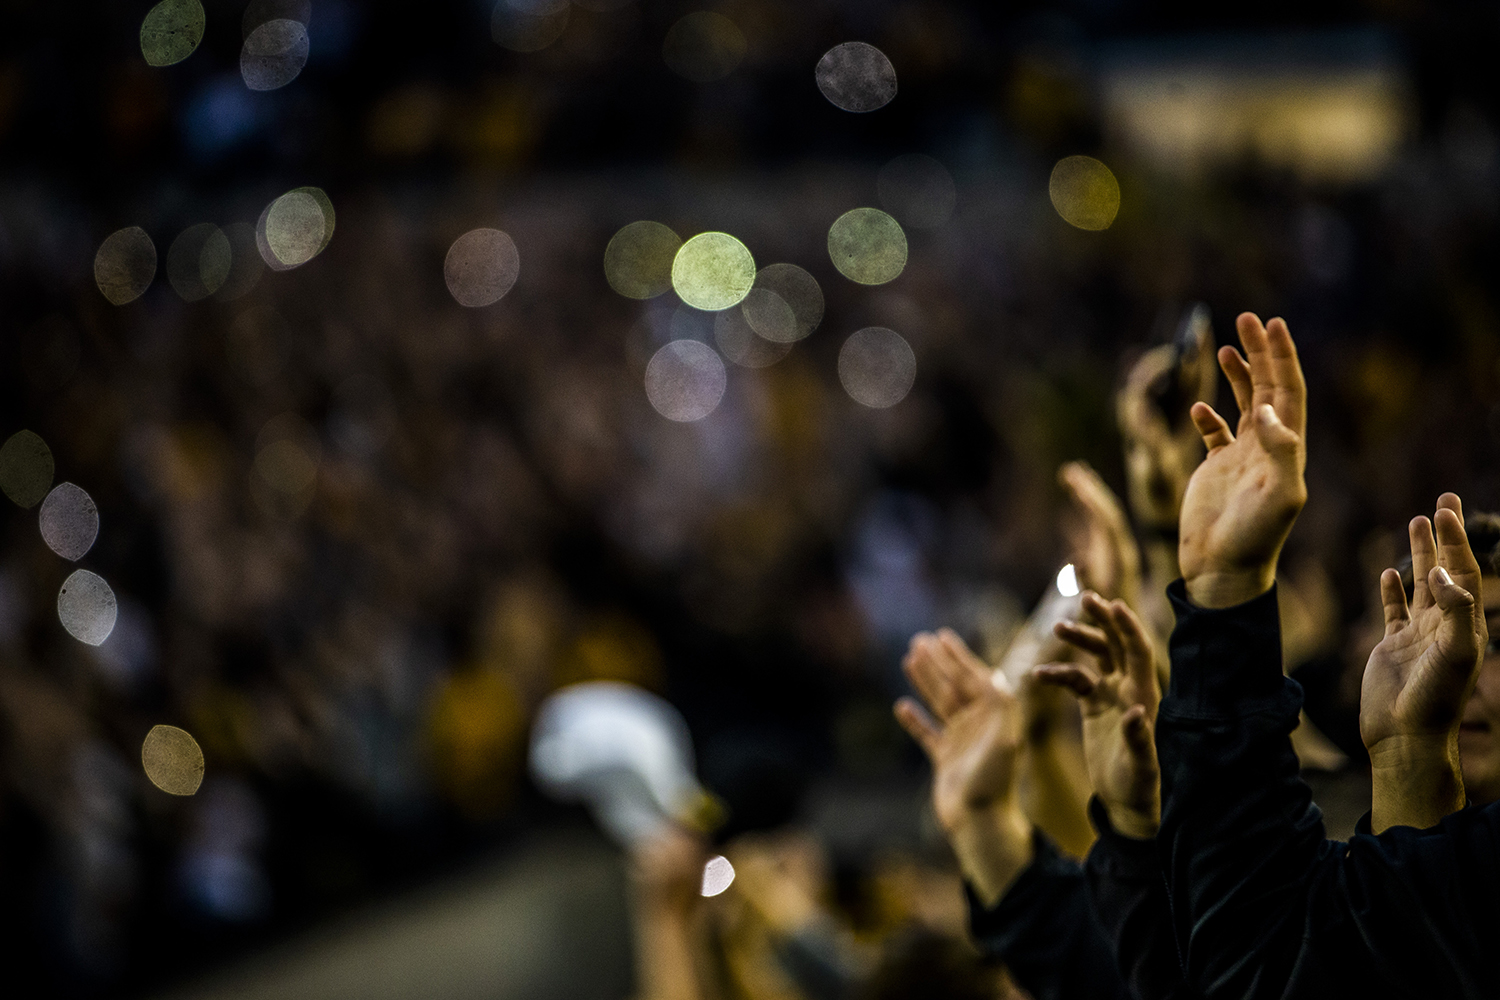 Fans+wave+after+the+first+quarter+during+the+Iowa+football+game+against+Miami+%28Ohio%29+at+Kinnick+Stadium+on+Saturday%2C+August+31%2C+2019.+The+Hawkeyes+defeated+the+Redhawks+38-14.